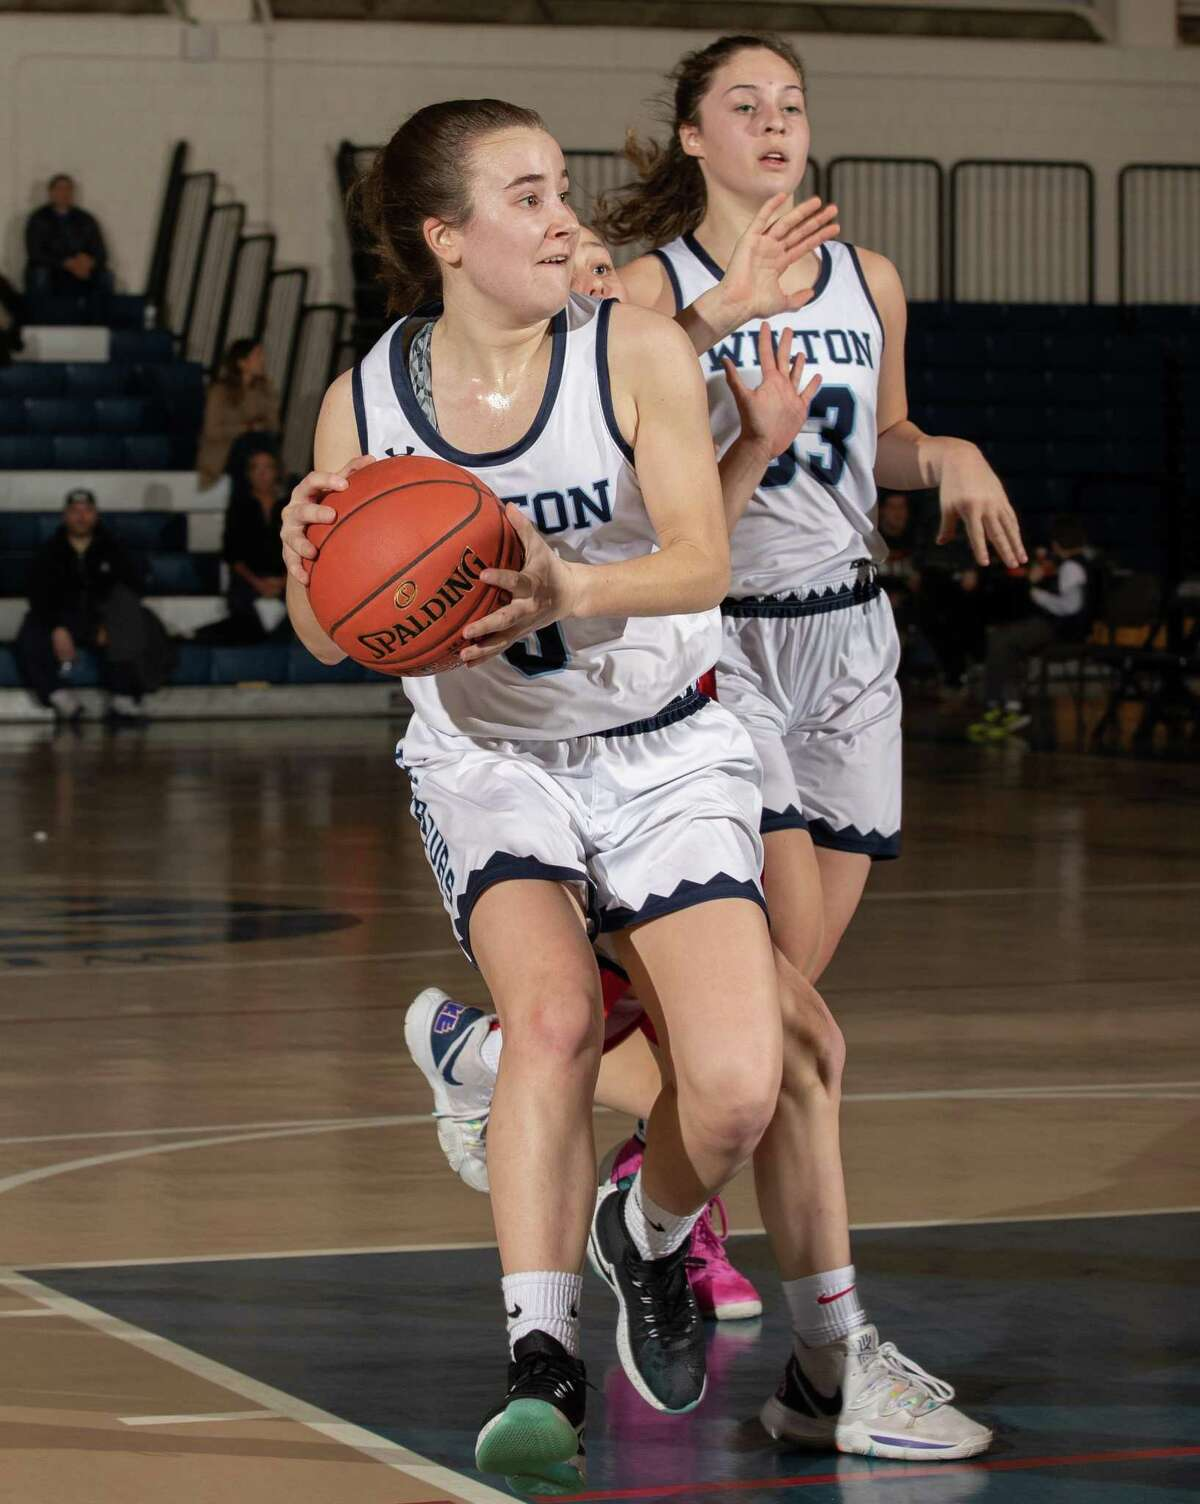 Zoe Rappaport looks to make a pass during Wilton's game against Greenwich on Monday night.